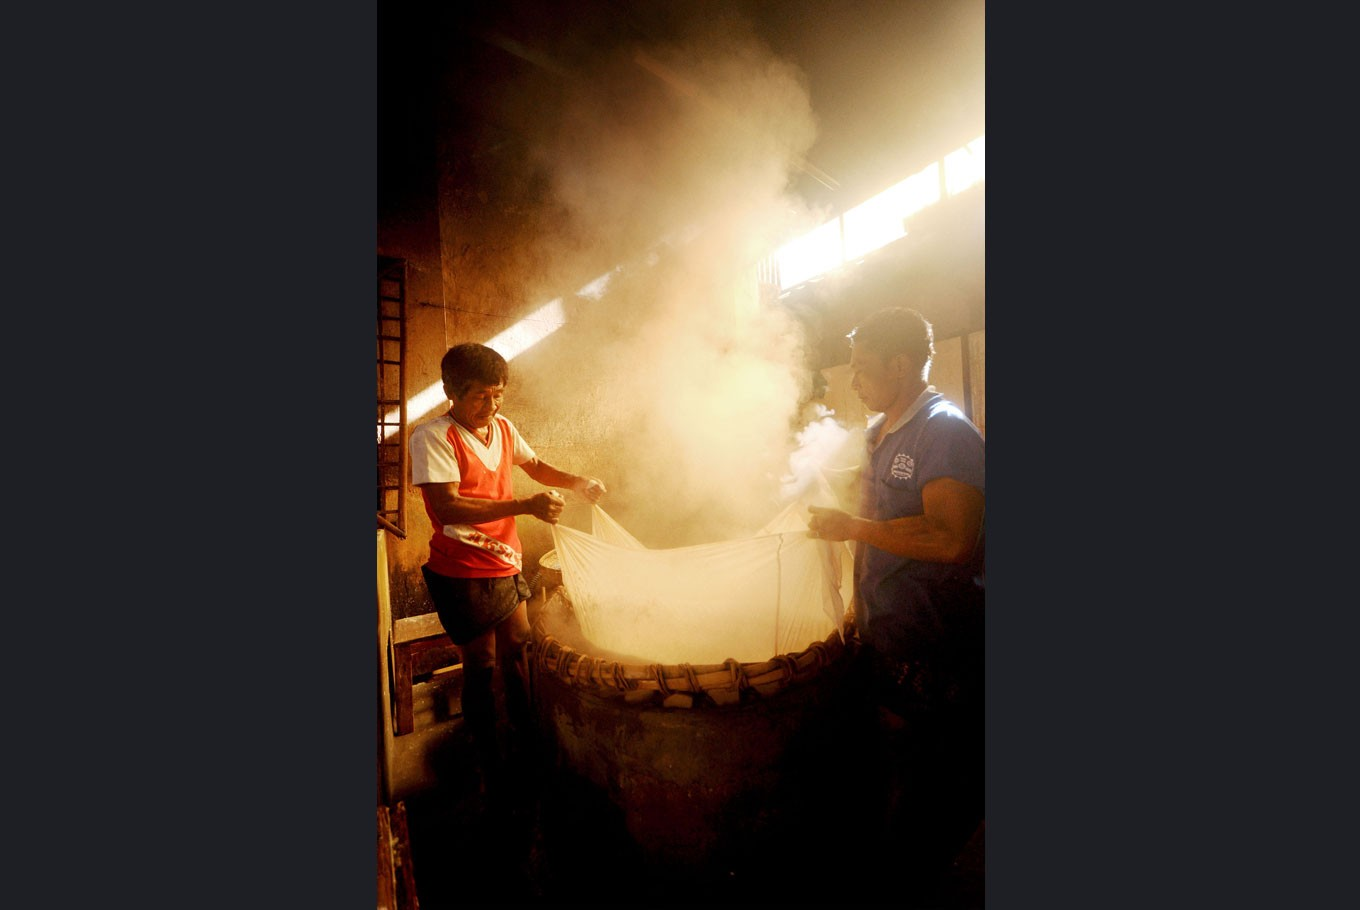 Soybean heat: Two workers sieve boiled soybean pulp in a large basin over burning firewood.